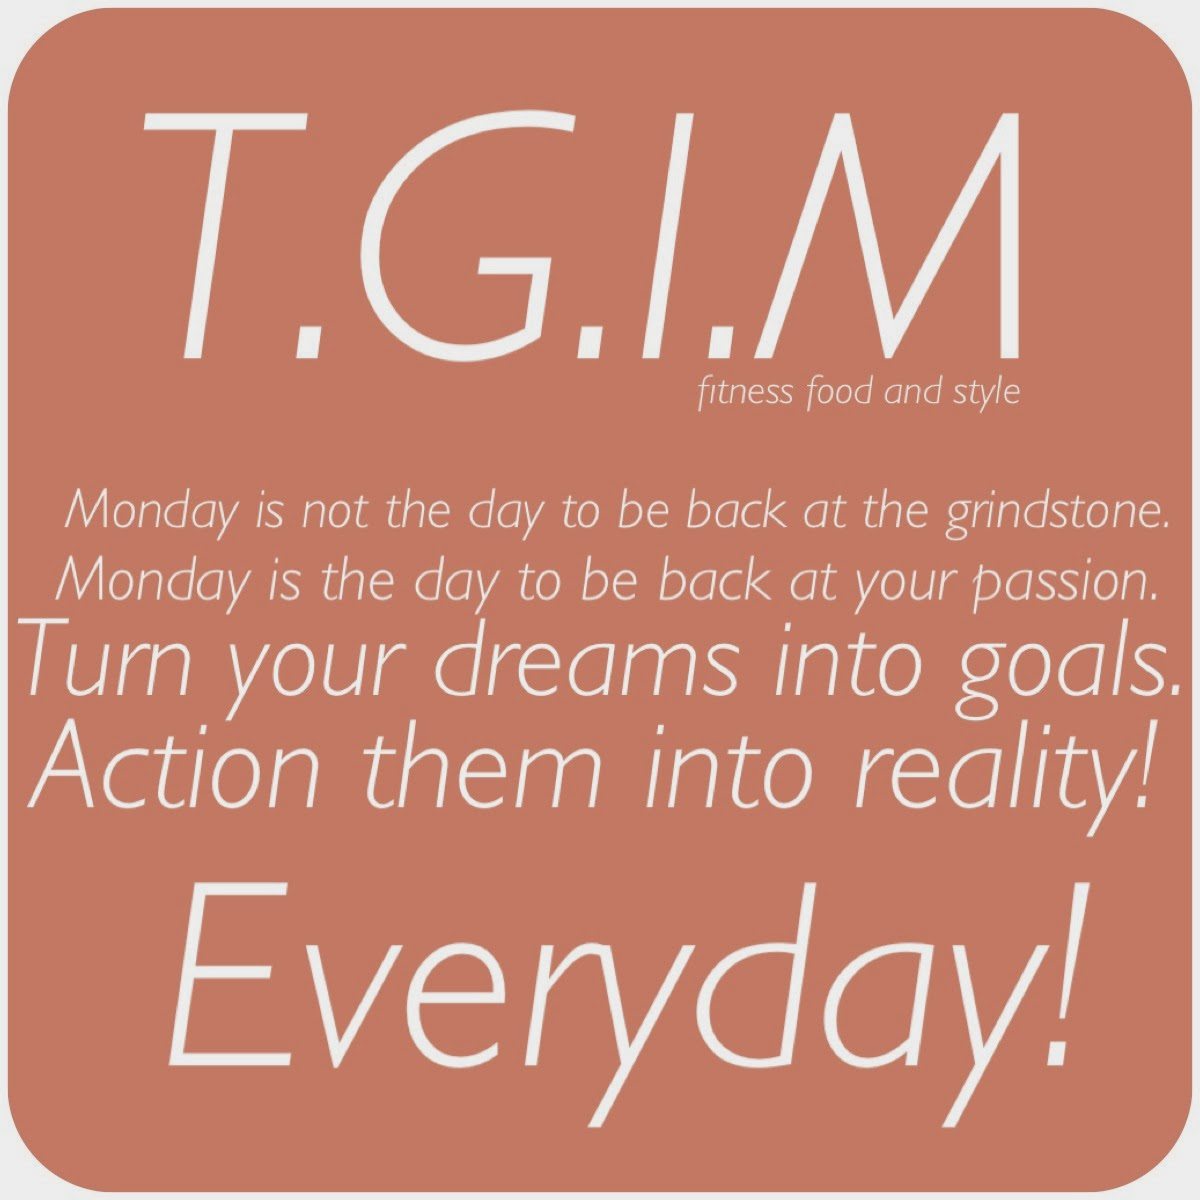 Happy Monday Quotes For Work: Healthy, Fit, And Focused: PiYo Week 1 Update